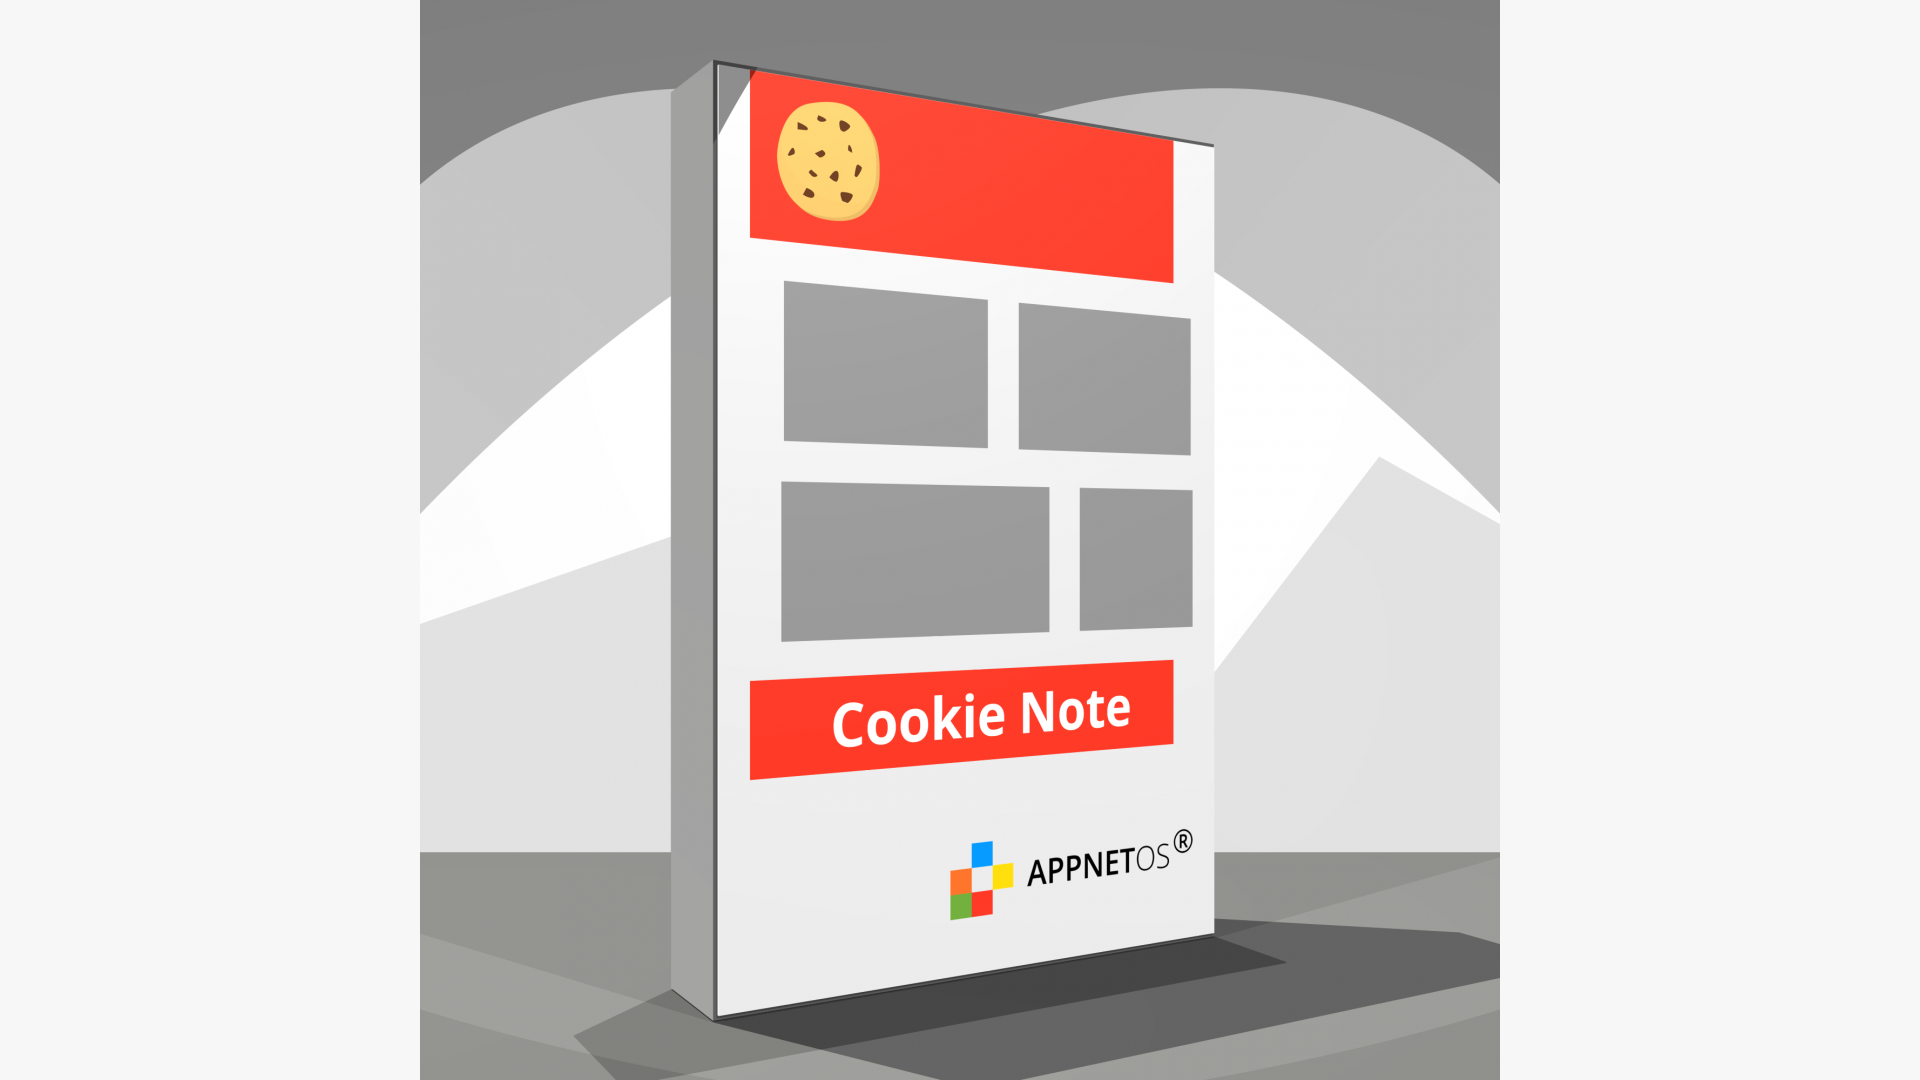 APPNET OS Cookie Note